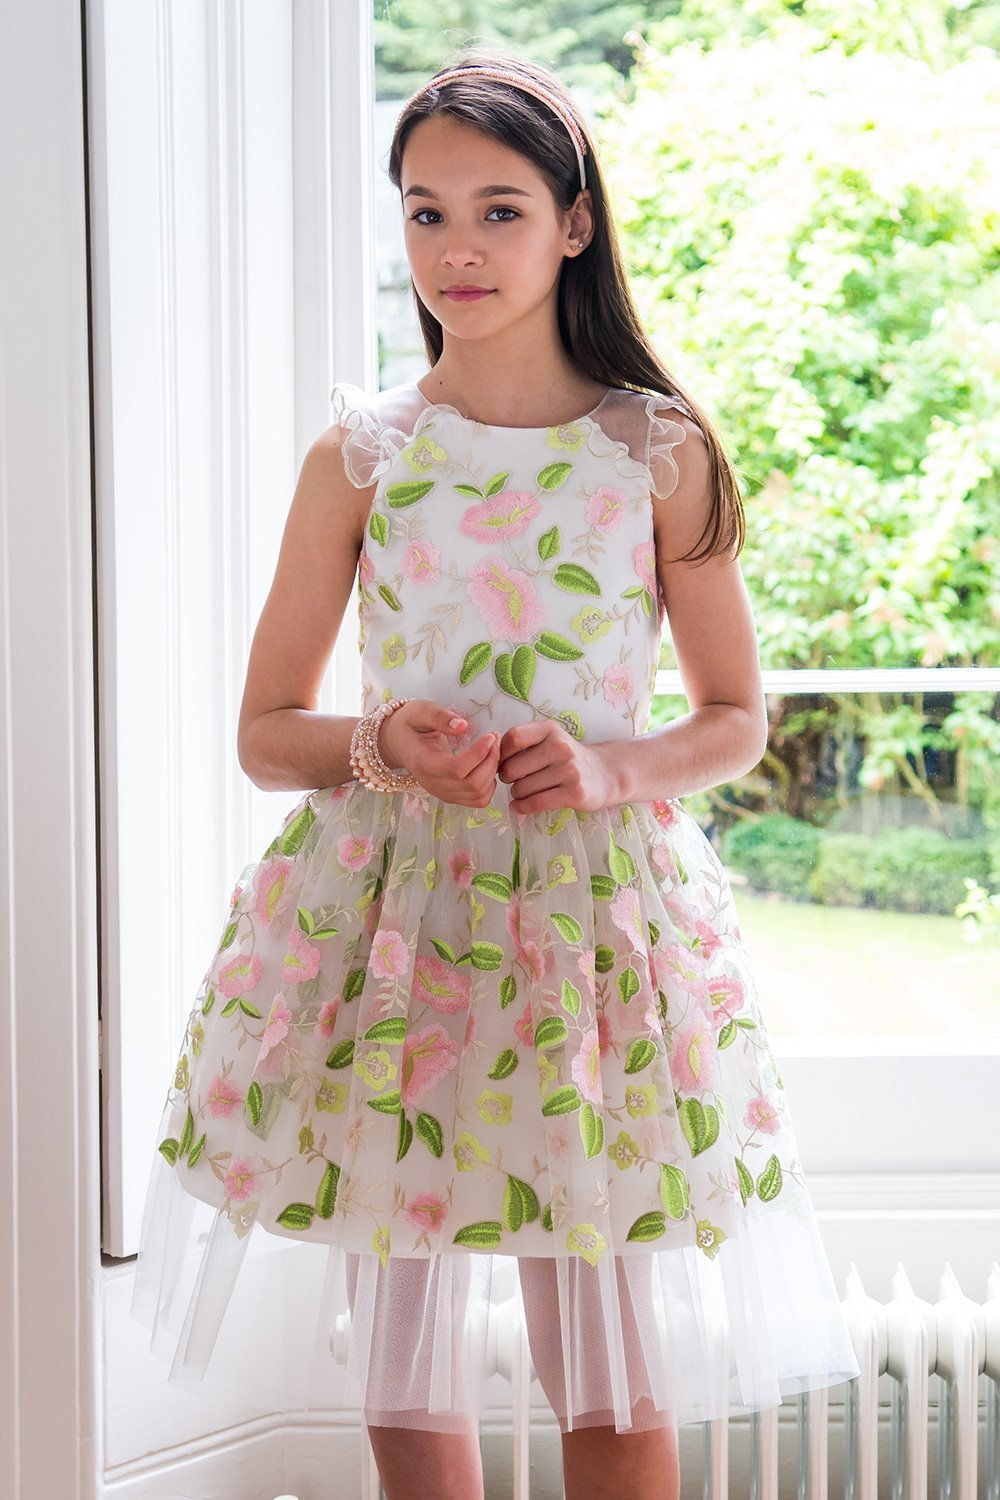 Ivory And Pink Sweetheart Dress David Charles Childrens Wear